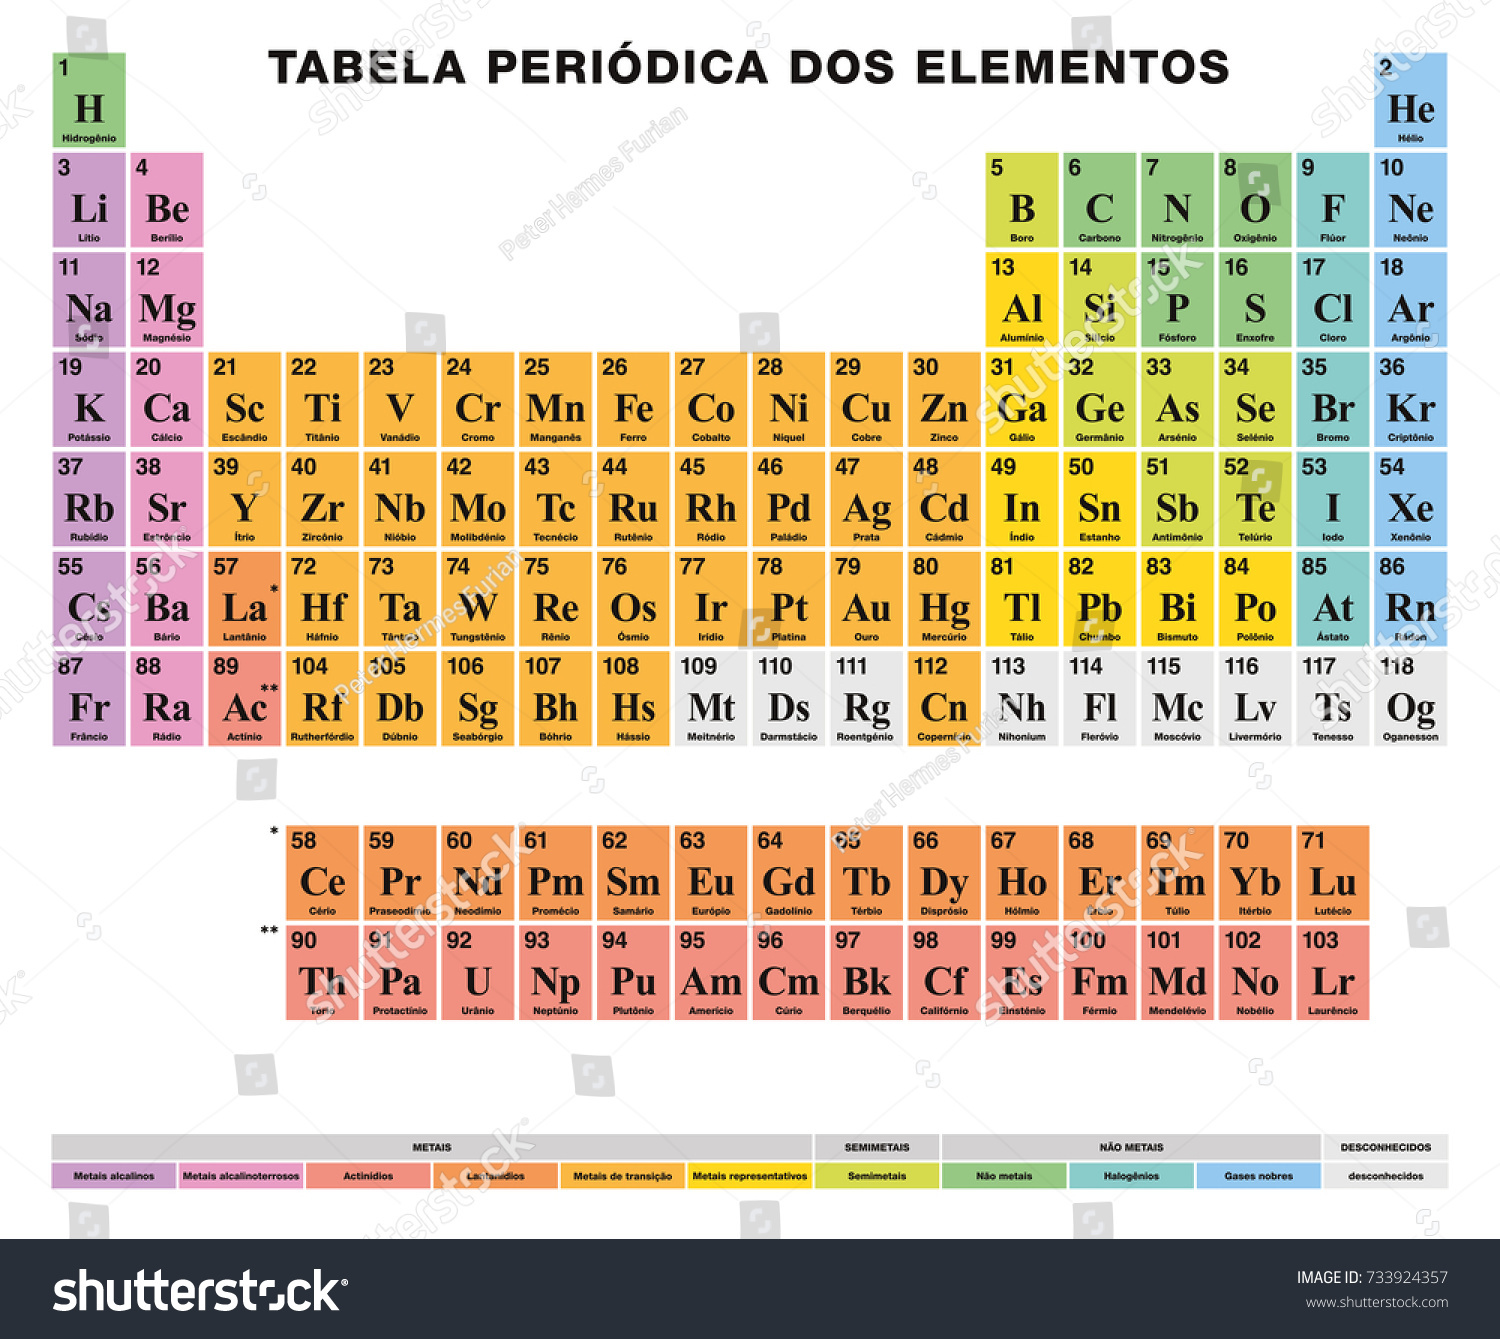 Periodic table elements portuguese labeling tabular stock vector periodic table of the elements portuguese labeling tabular arrangement 118 chemical elements gamestrikefo Image collections